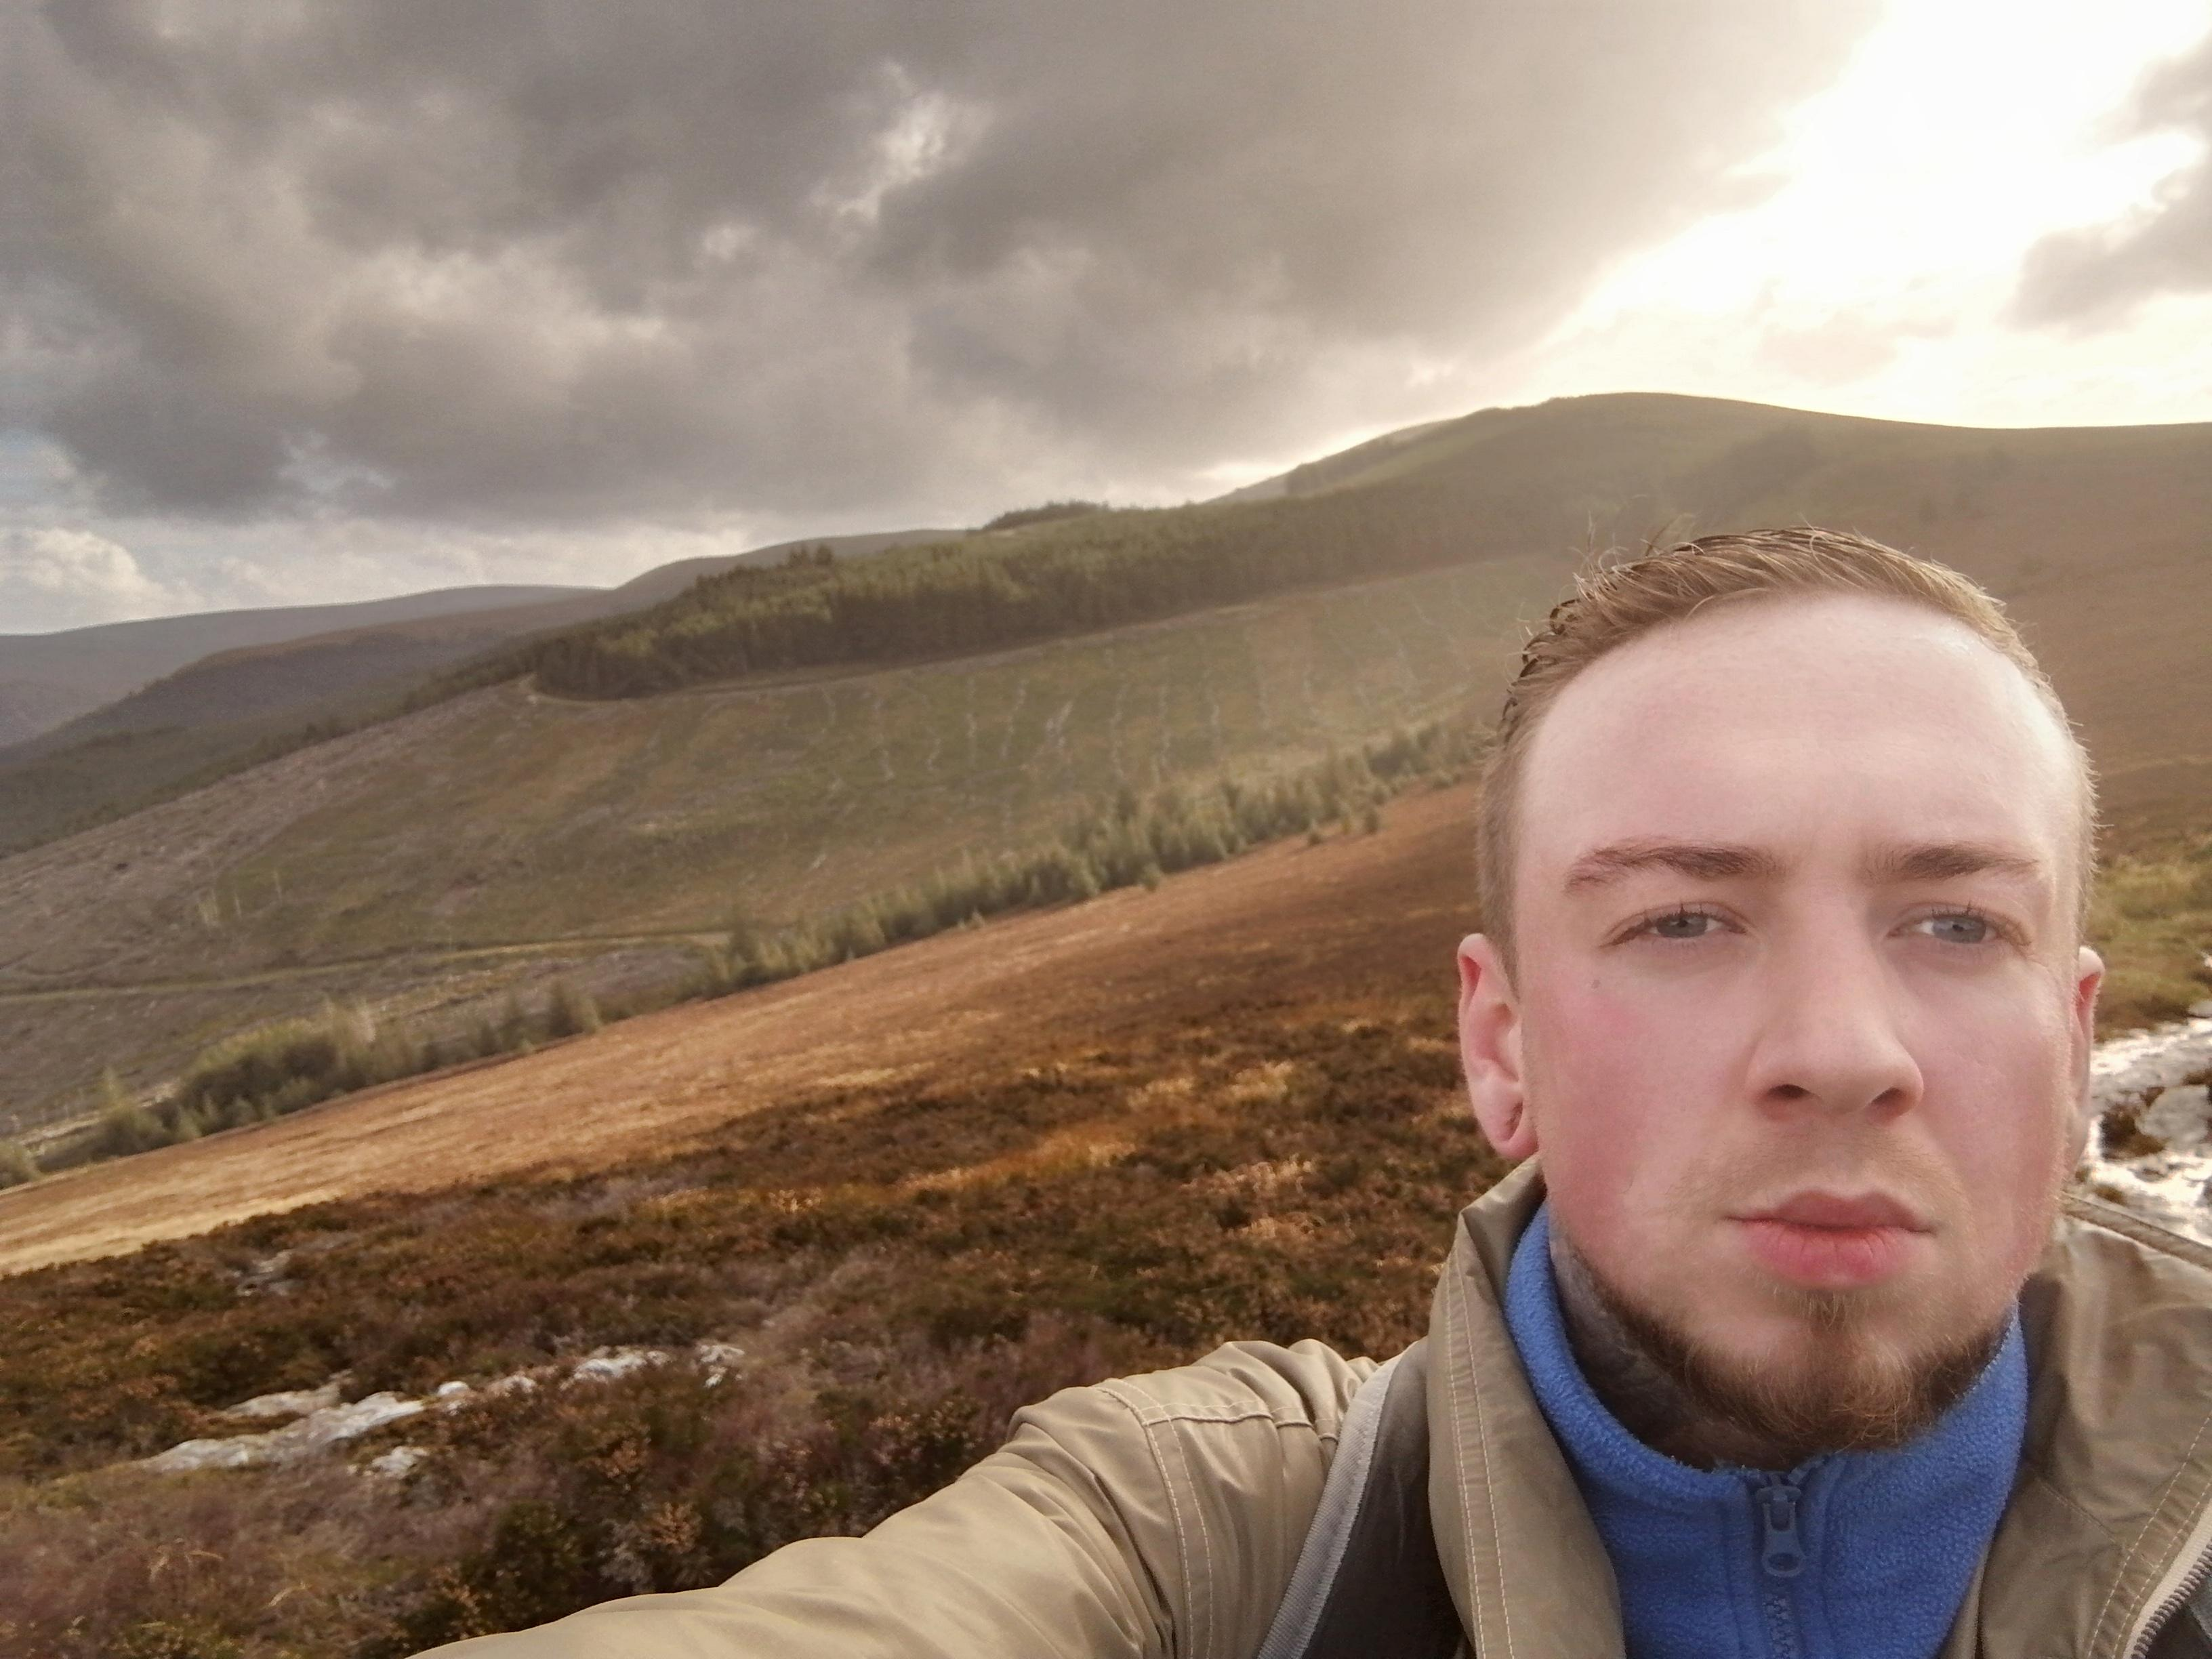 [image] last year I was in the midst of a near fatal drug addiction, isolated, paronoid, depressed. This year I'm sober & for the first time went on a hike in the beautiful wicklow mountains in ireland, I bonded with the people who came with me and im so grateful to be alive. There is more to life!